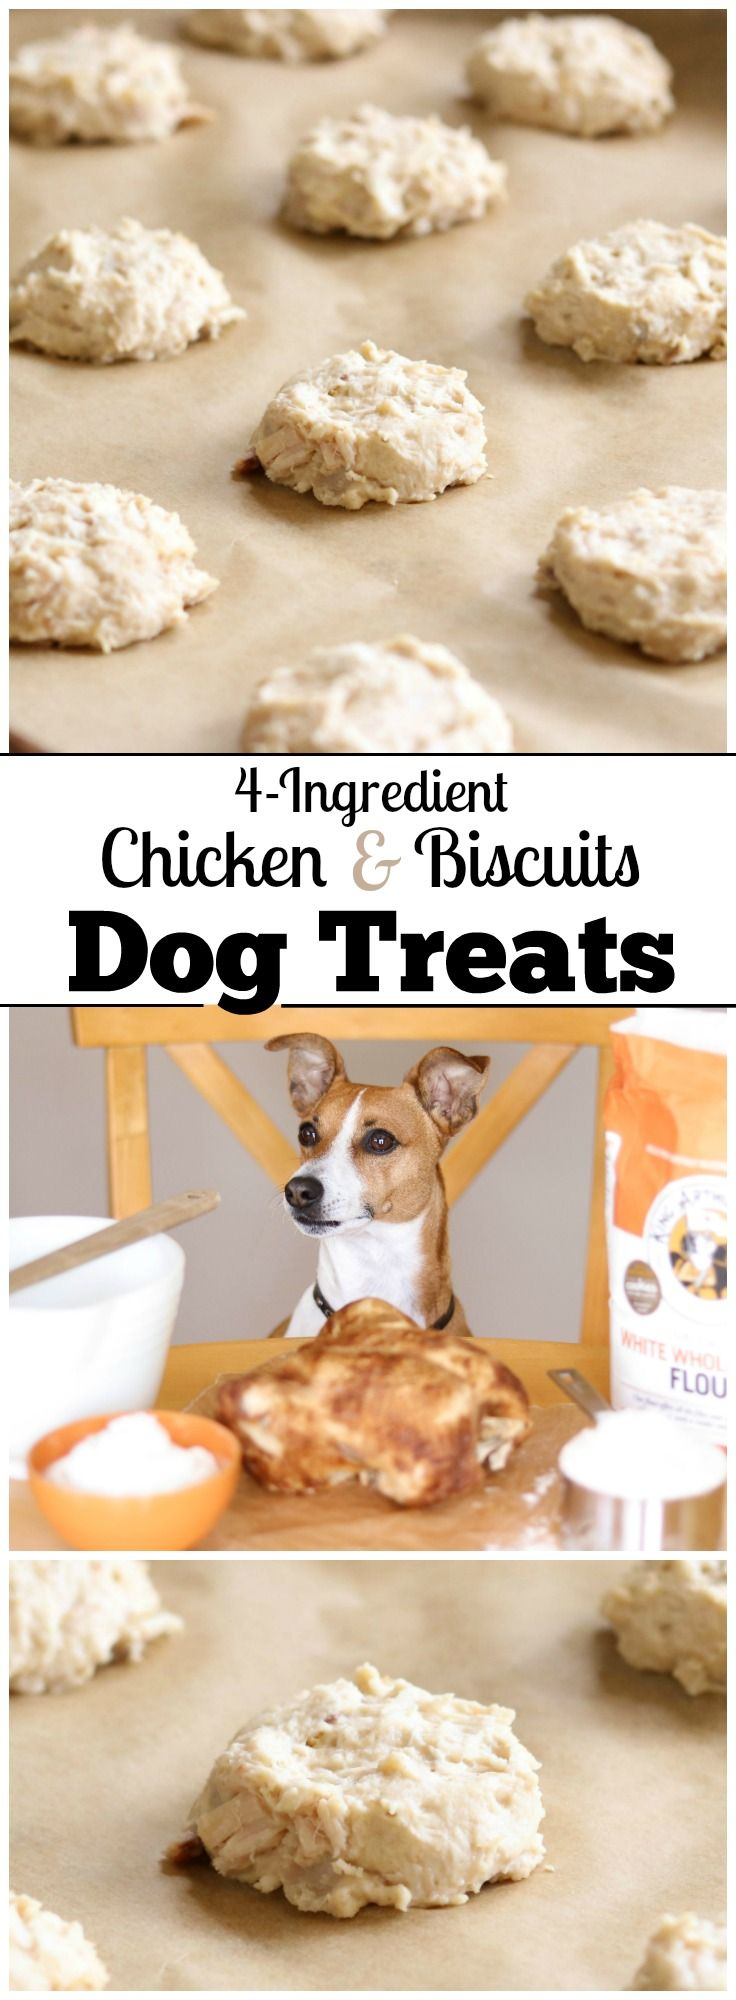 Perfect for using up leftover chicken! These easy Homemade Dog Treats are the doggy version of that classic comfort food, chicken and biscuits! Just store your leftover chicken in the freezer until you're ready to make these healthy dog treats. And there's no need to fuss with cookie cutters – these easy drop biscuits are so much faster! With just 4 ingredients, this dog treat recipe is ultra quick and easy, and these store beautifully in the freezer for weeks!   www.TwoHealthyKitchens.com